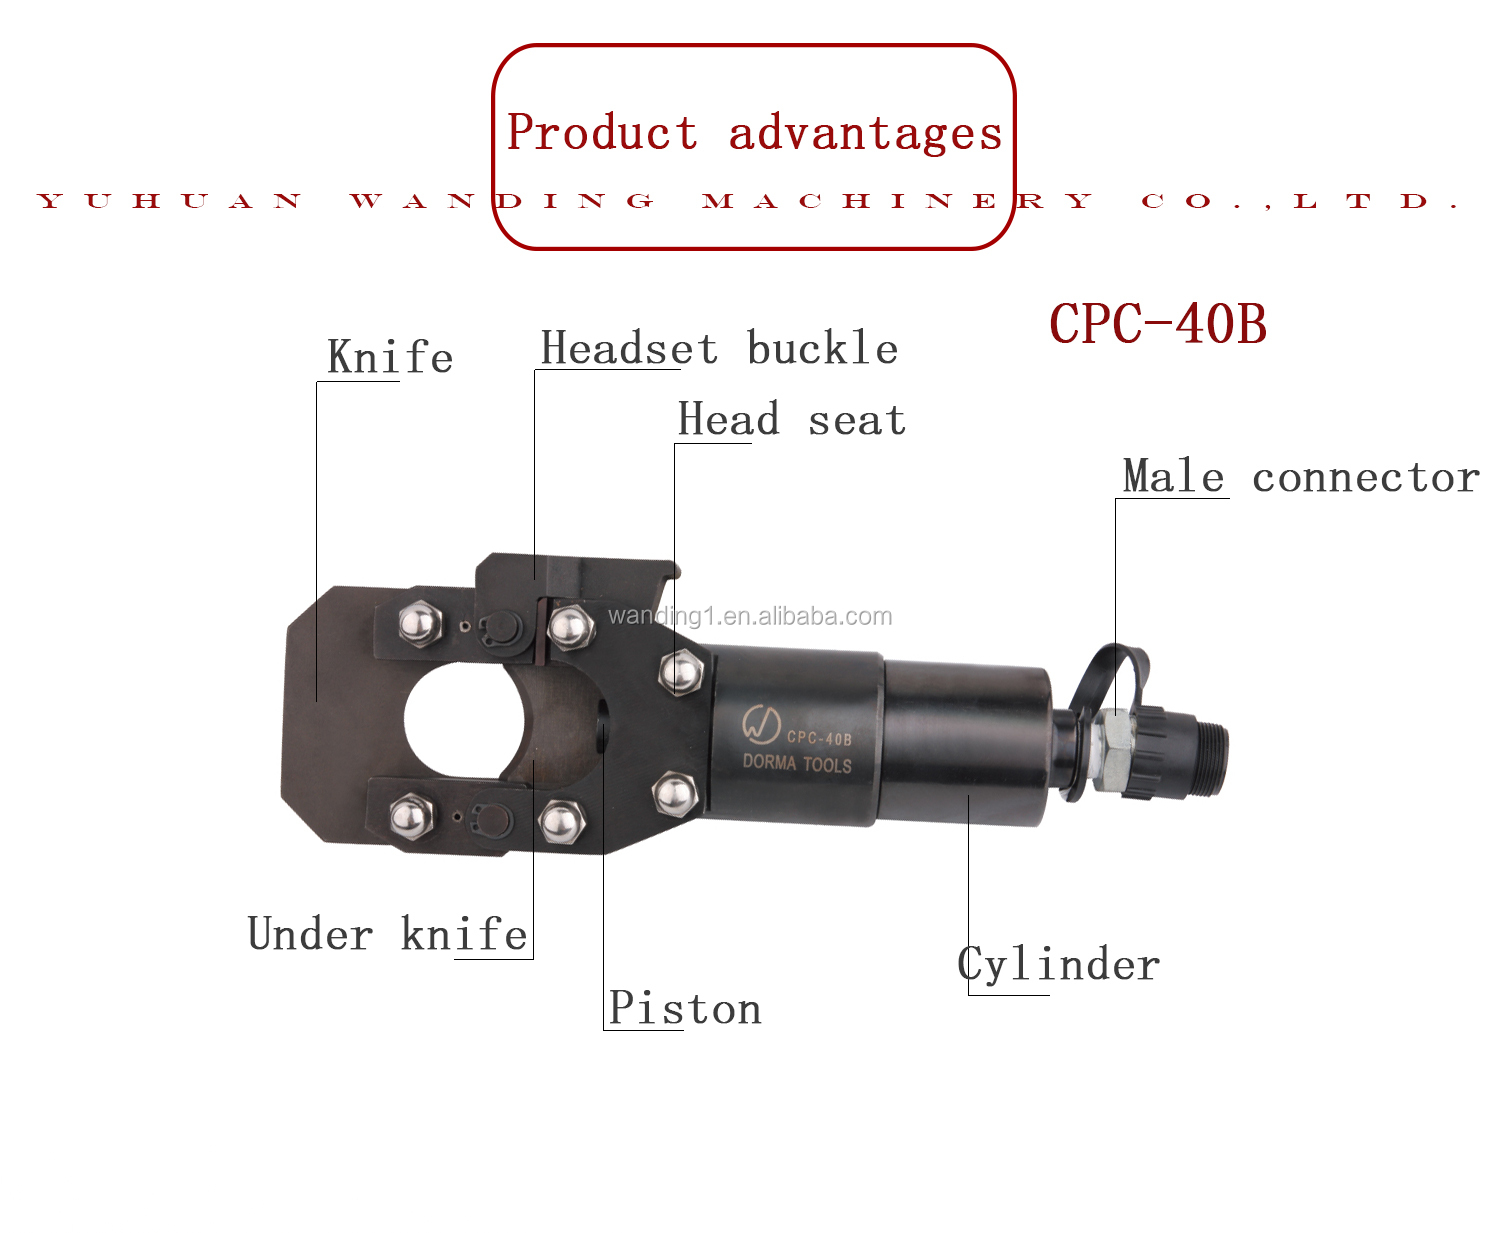 CPC-40B Basic Construction Tools Split Hydraulic Cable Cutter Max Cutting 40mm